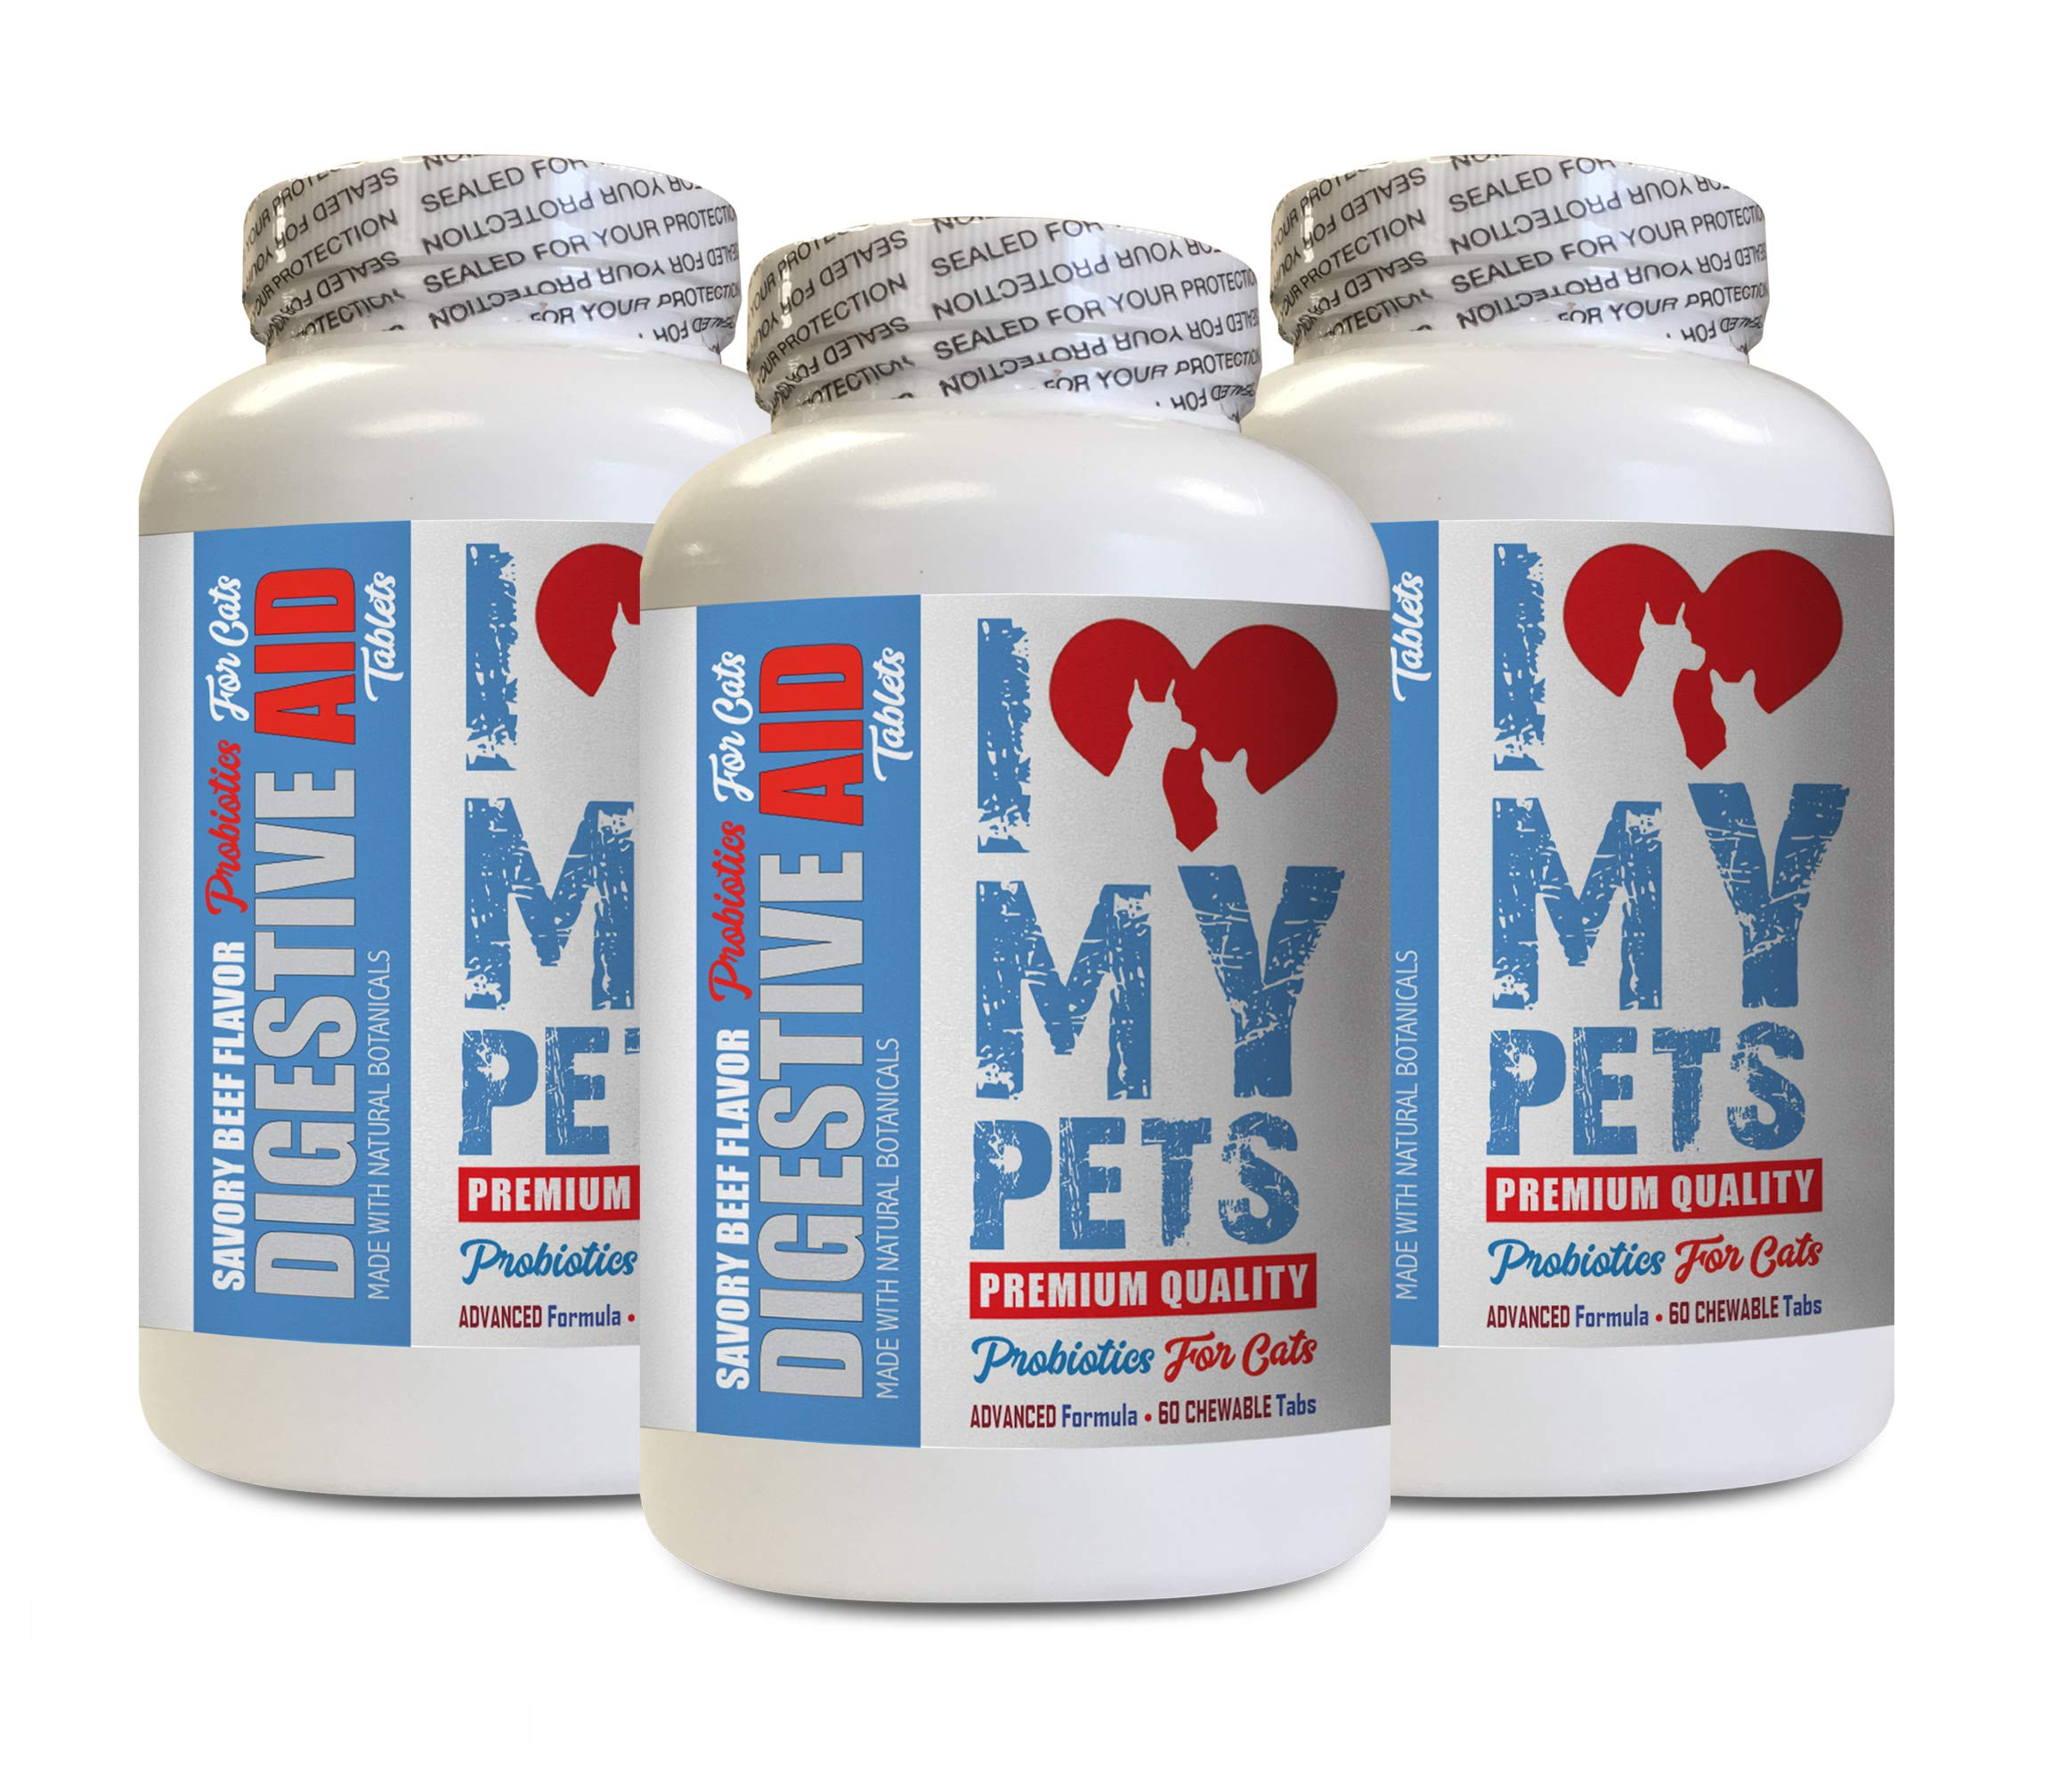 I LOVE MY PETS LLC Cats Digestive enzymes - CAT Digestive AID - Healthy PROBIOTICS - Chews - Digestive Health for Cats - 180 Treats (3 Bottles) by I LOVE MY PETS LLC